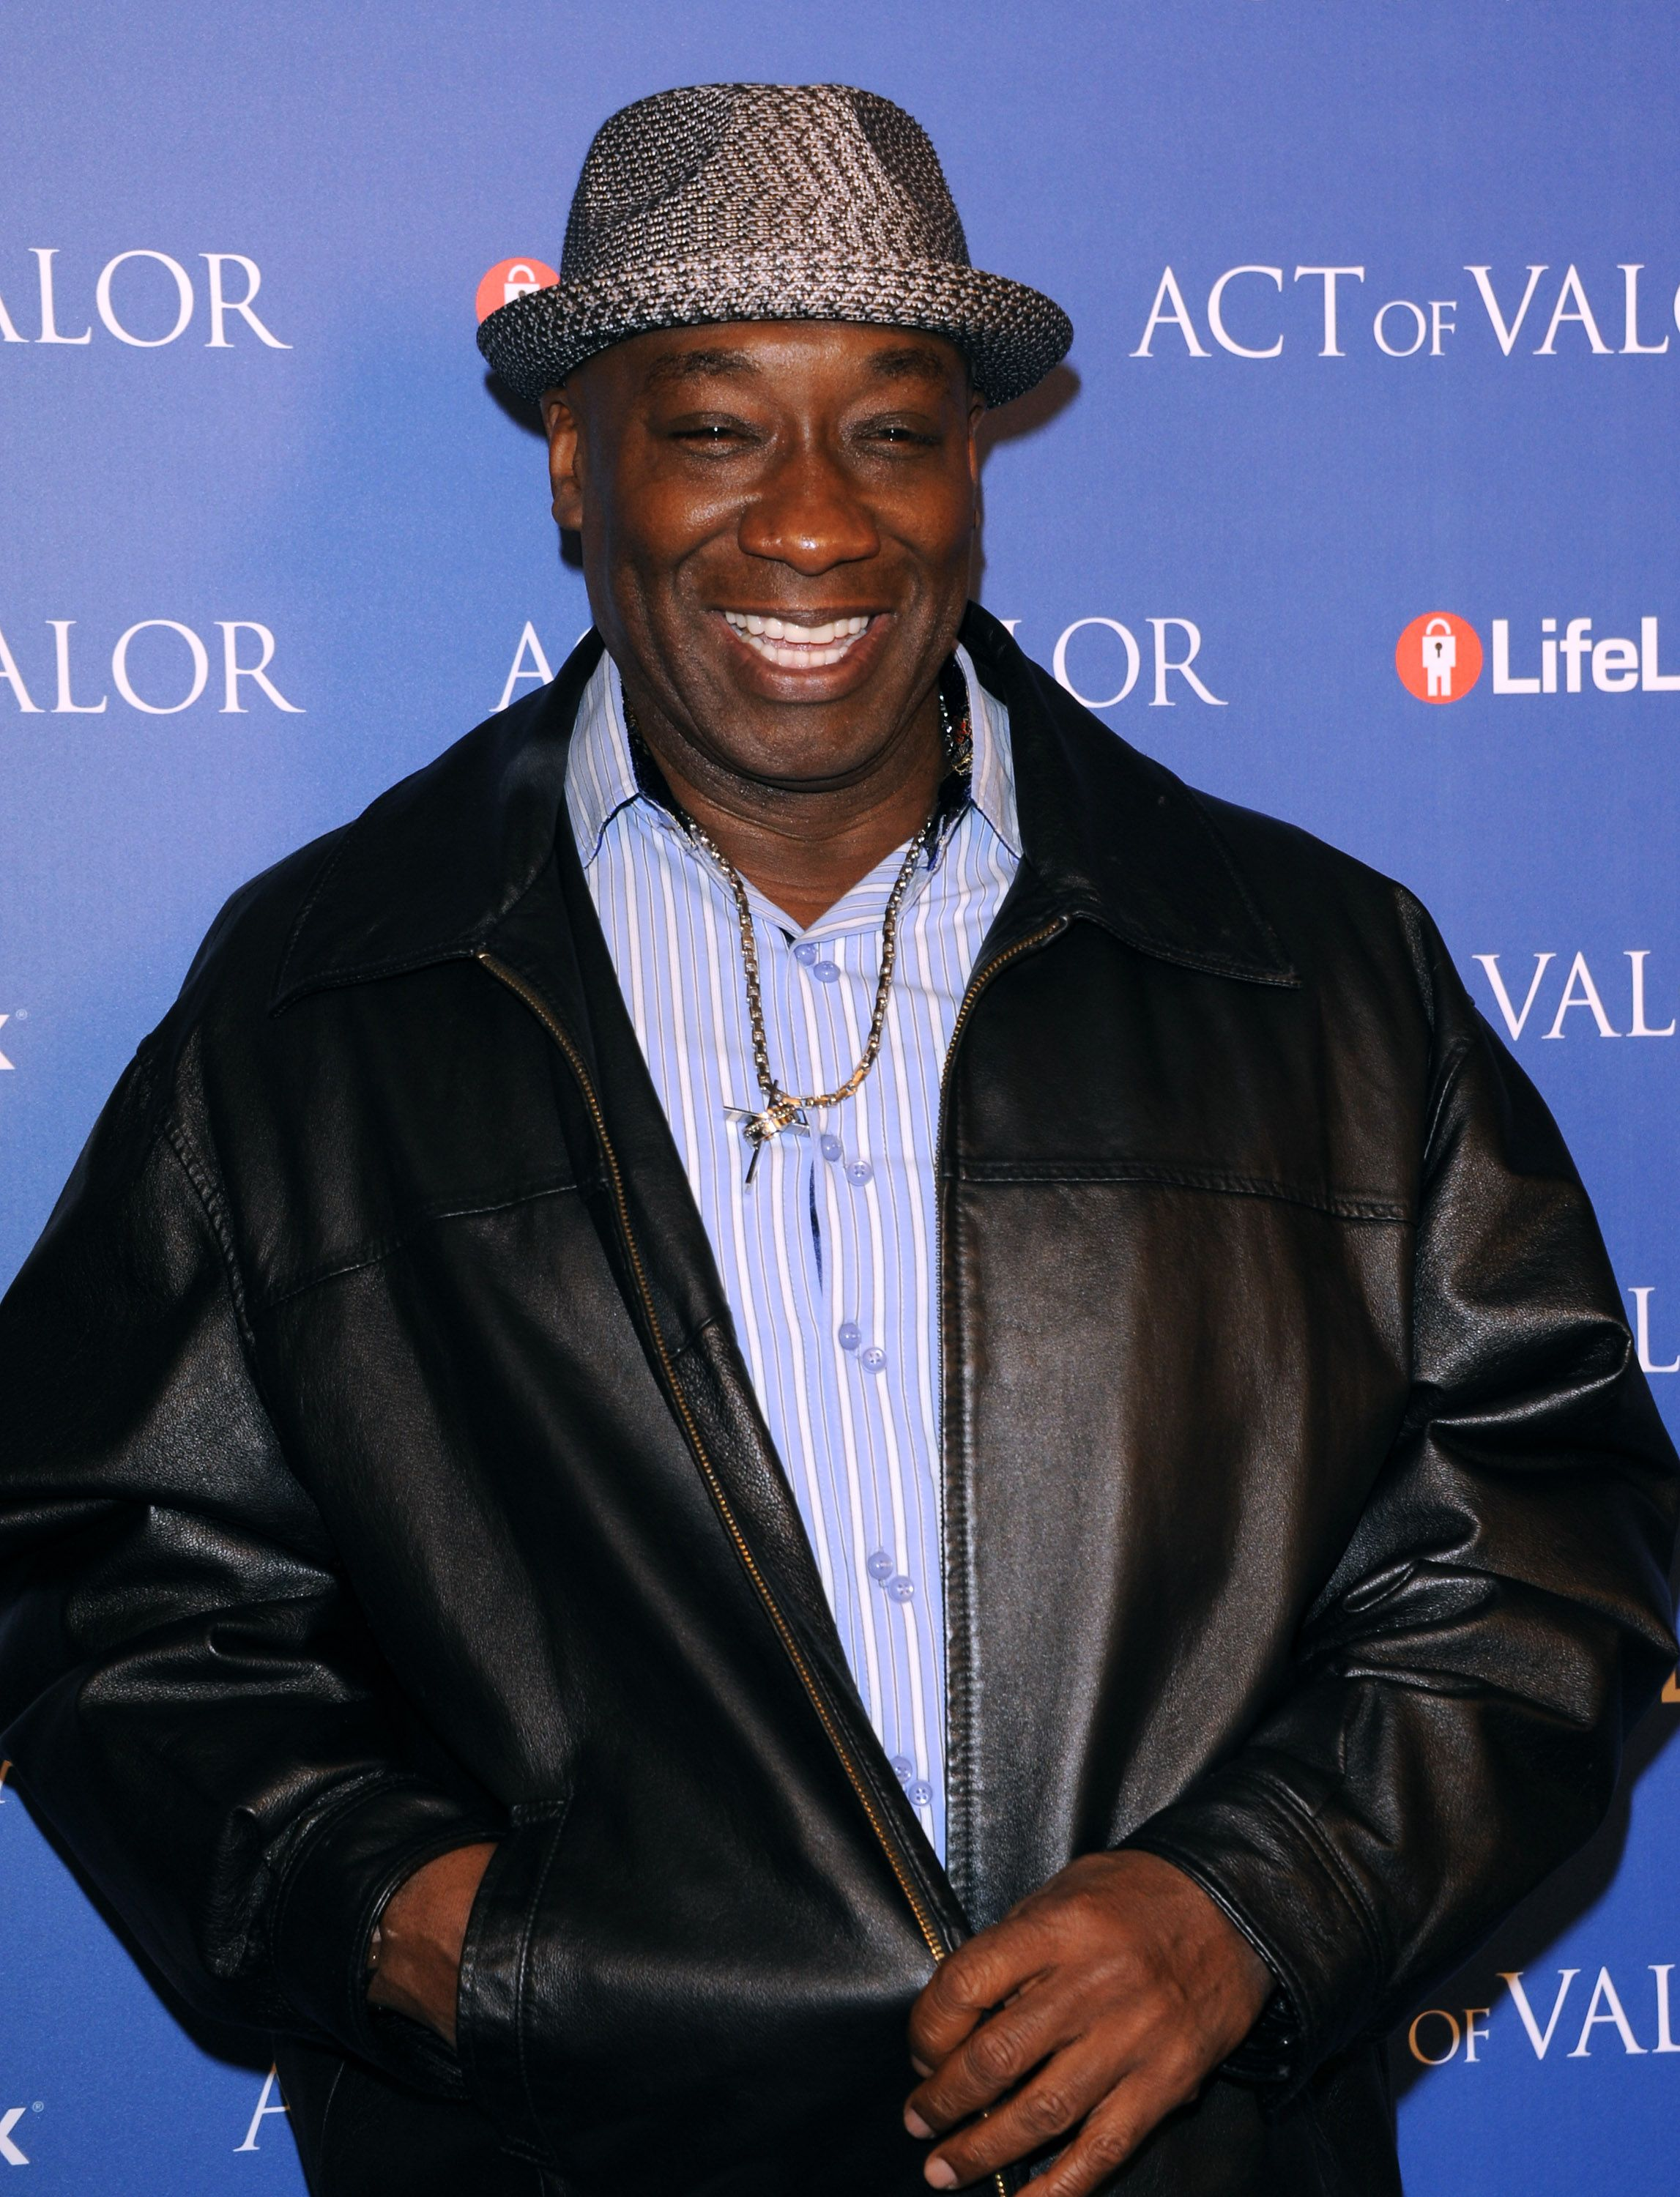 Michael Clarke Duncan attends the premiere of Relativity Media's 'Act of Valor' at ArcLight Cinemas on February 13, 2012 in Hollywood, California. | Source: Getty Images